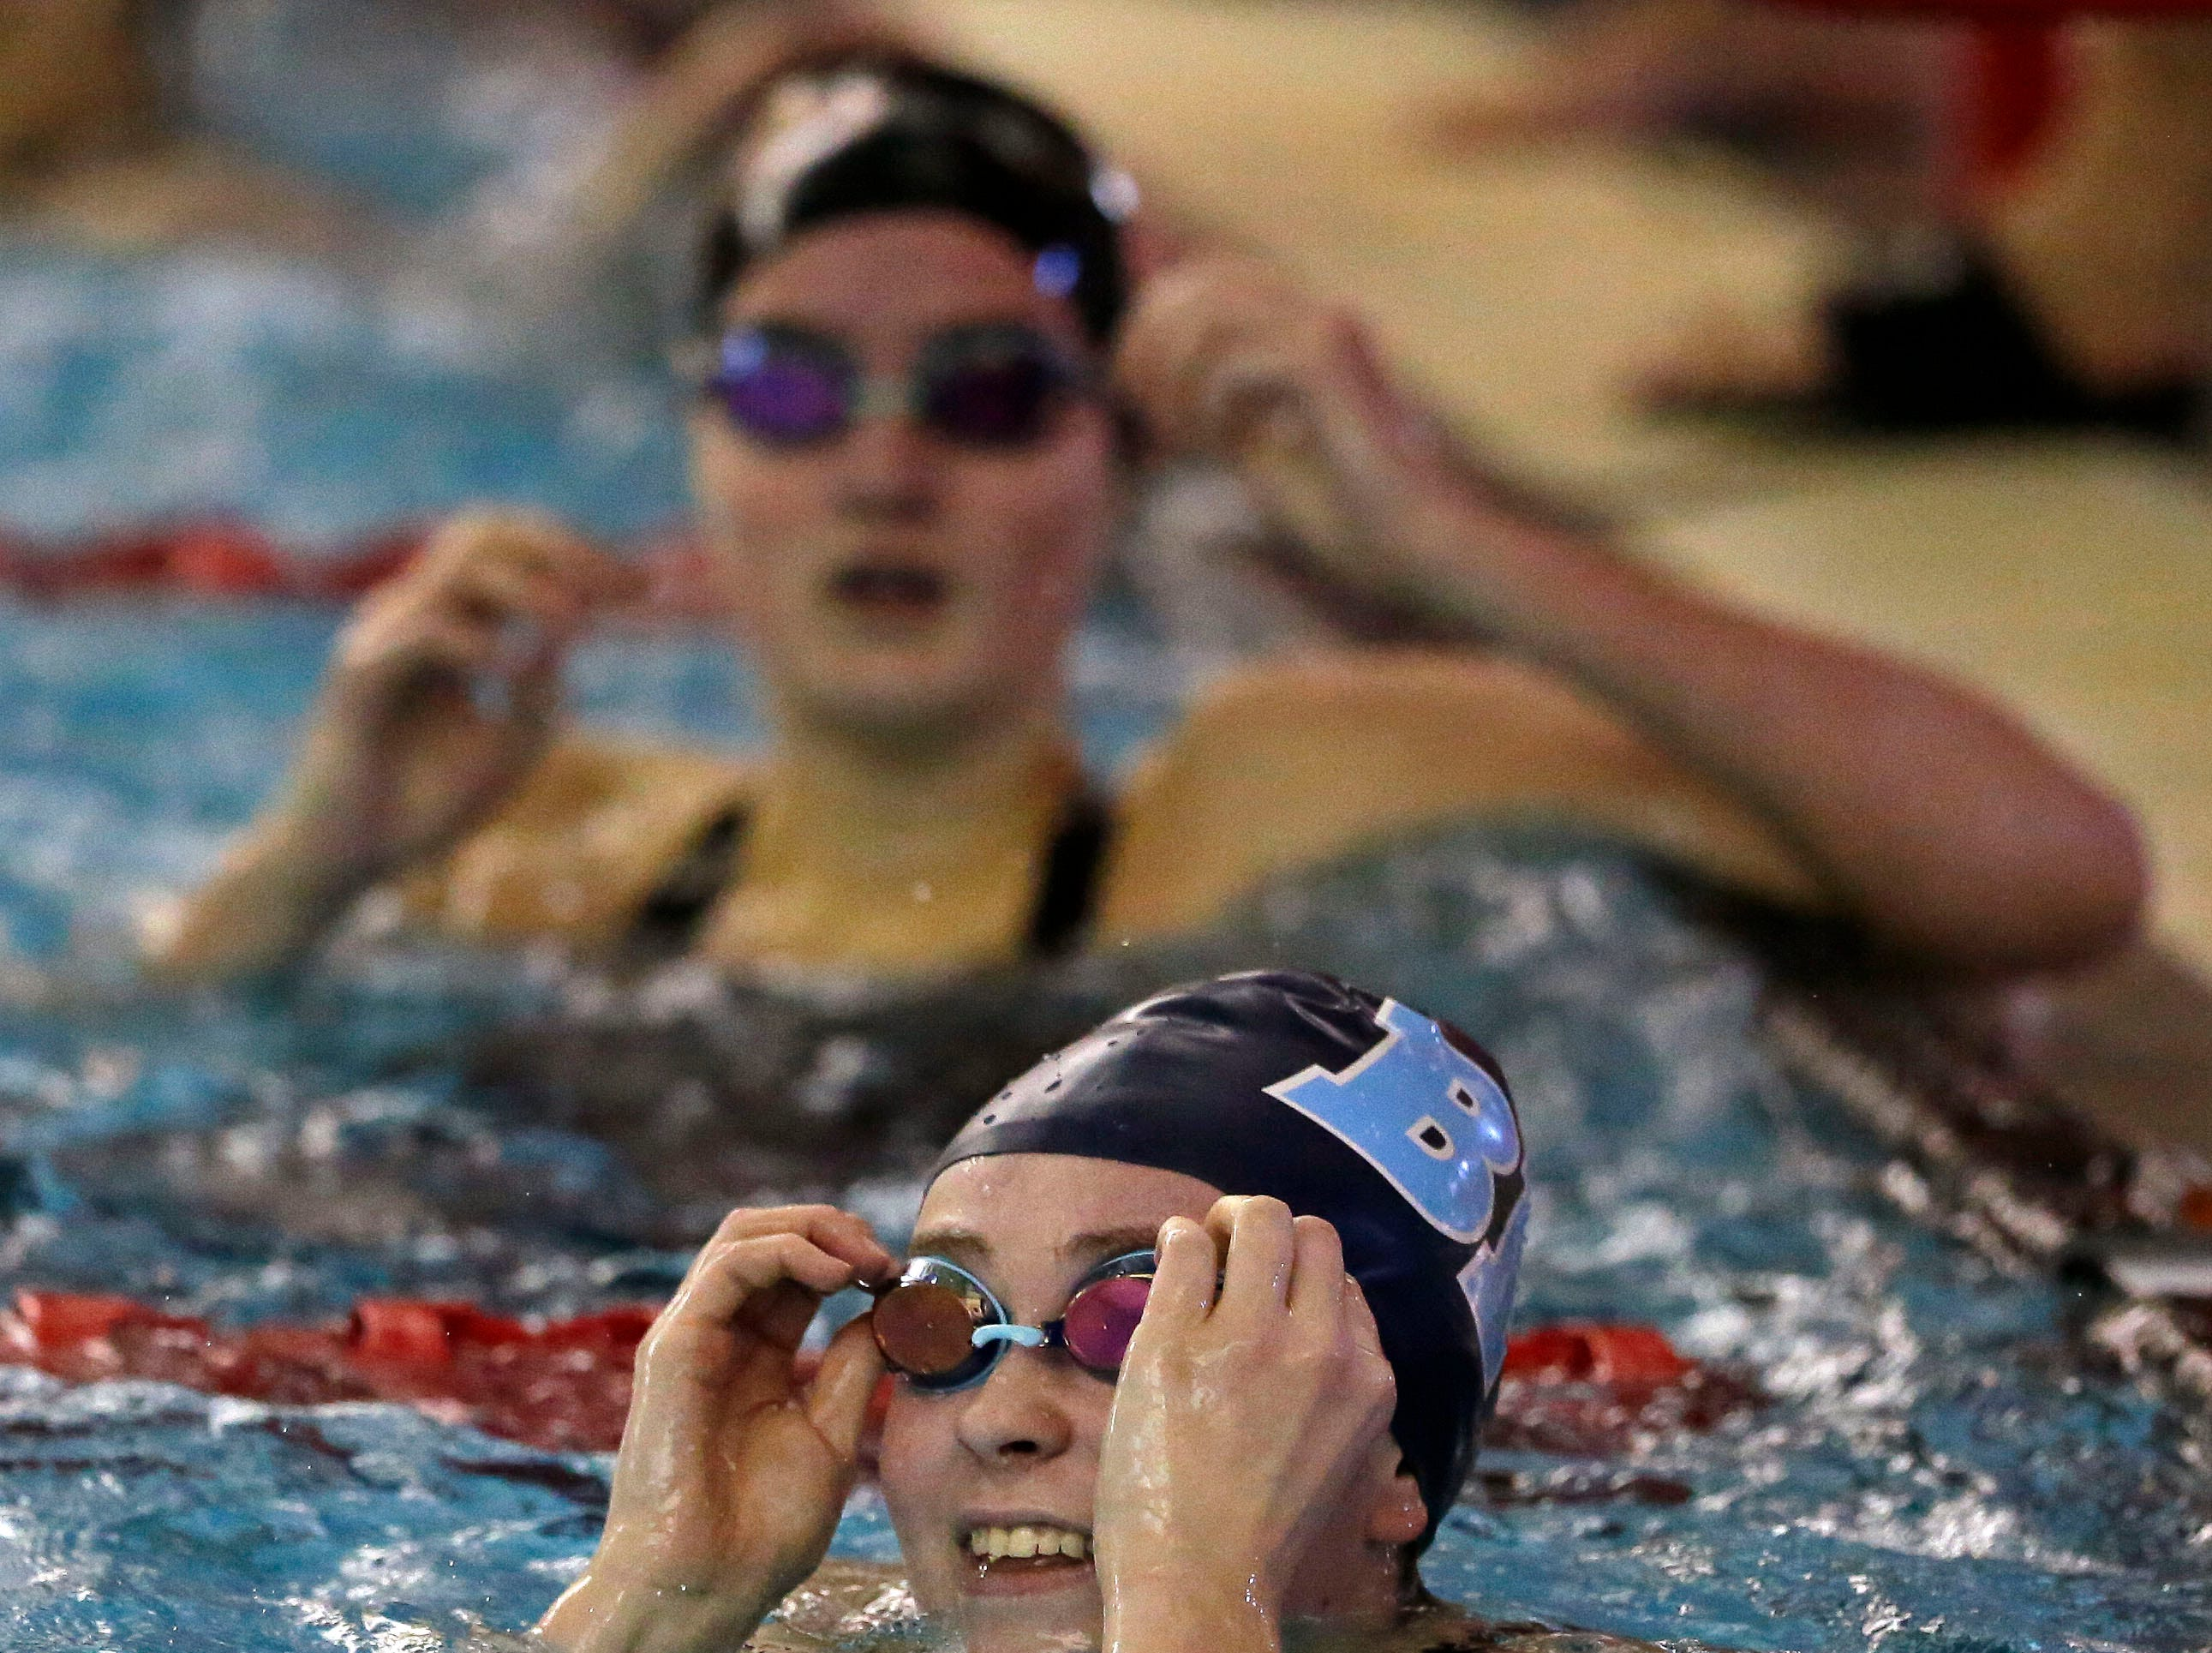 Riley Melendy of Bay Port checks the time in the 100 Yard Backstroke as the WIAA Division 1 swimming sectional meet takes place Saturday, November 3, 2018, at Neenah High School in Neenah, Wis. Winners advanced to state.Ron Page/USA TODAY NETWORK-Wisconsin